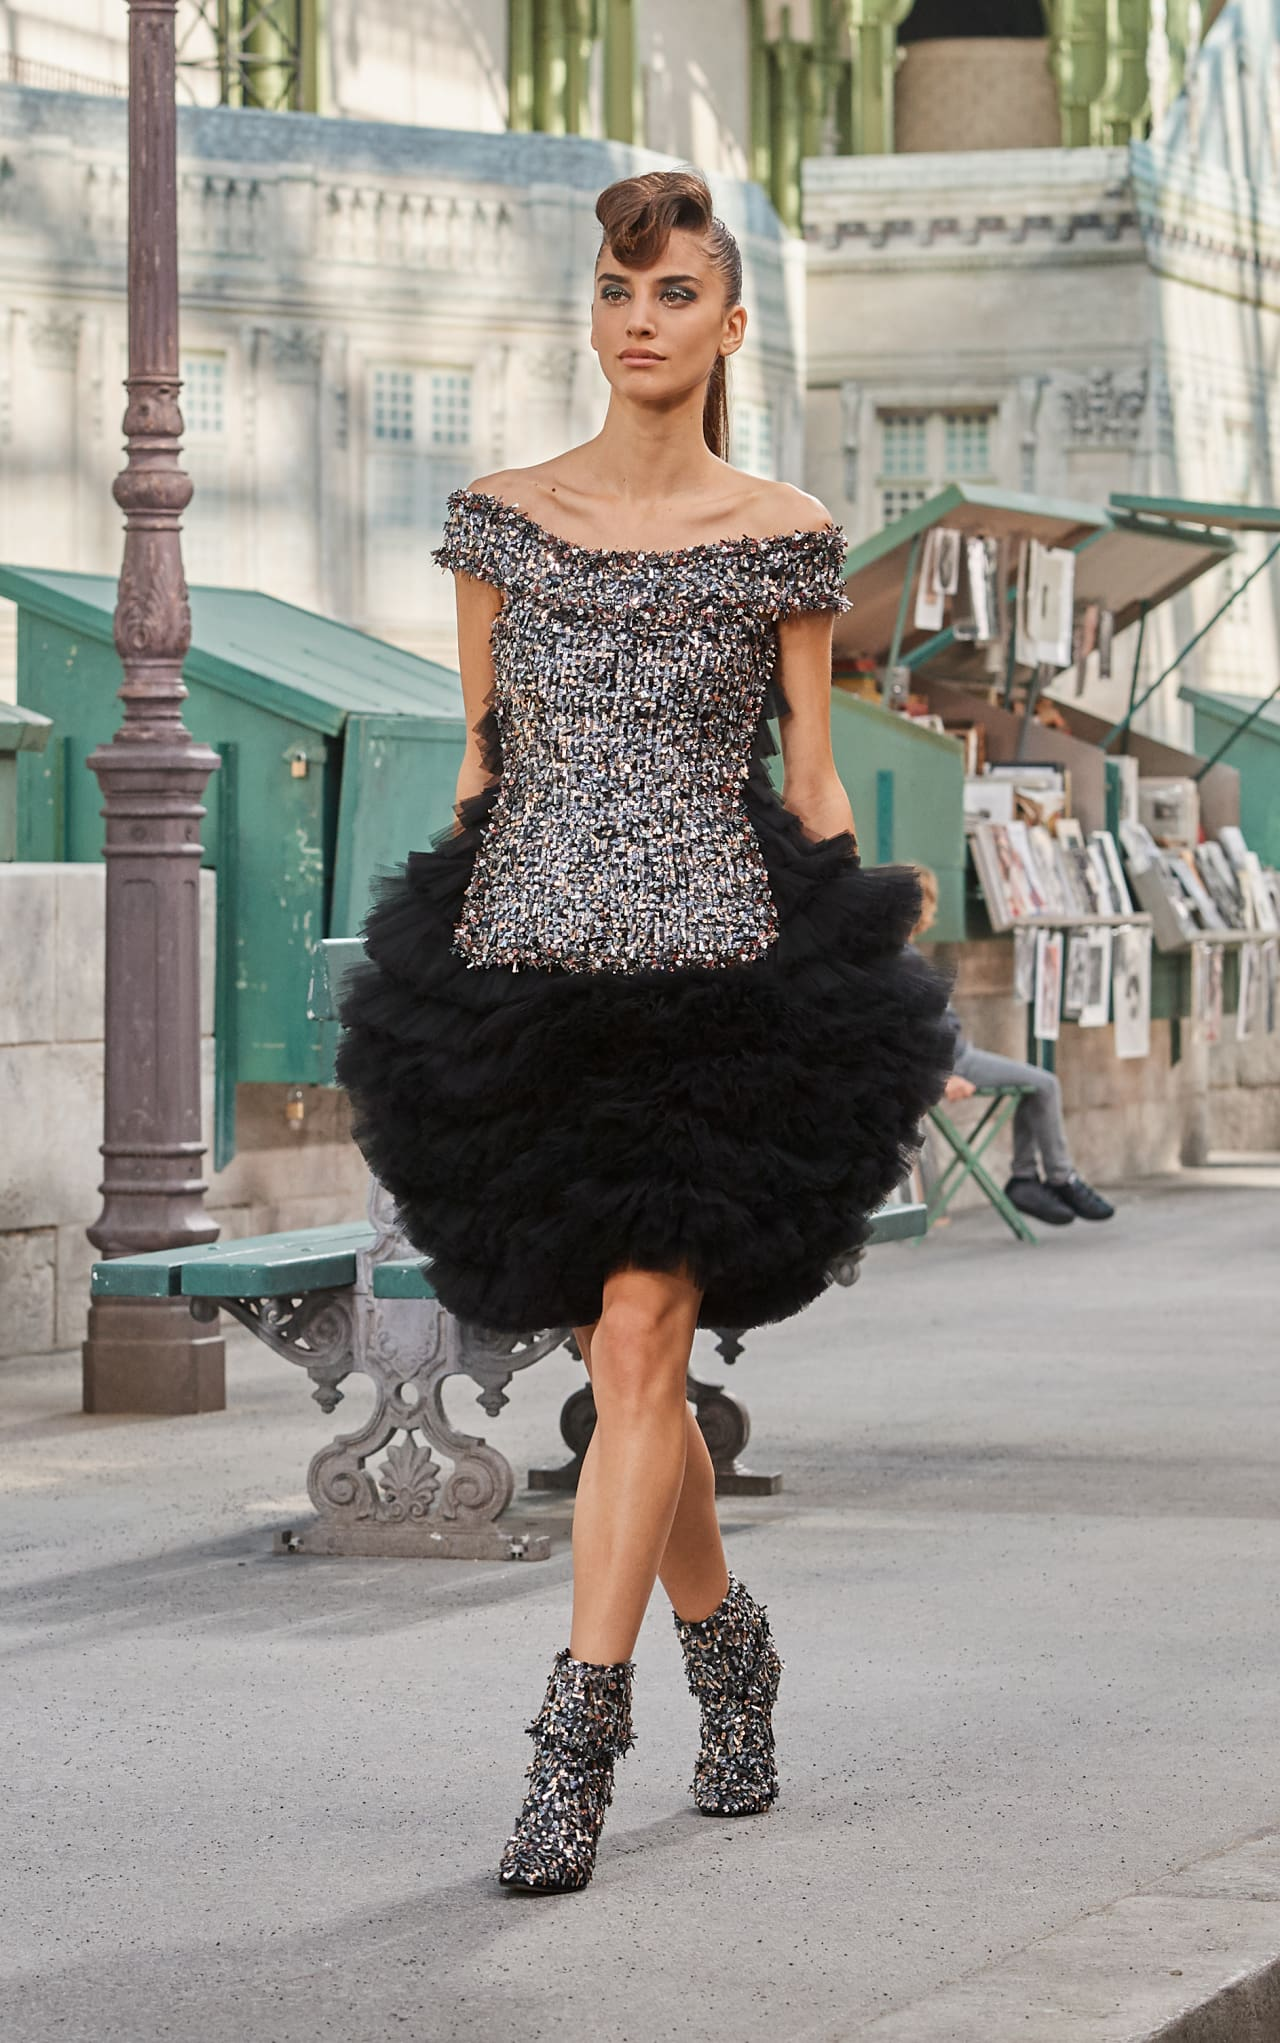 Abito da sera corto Chanel con gonna in tulle autunno inverno 2018 2019